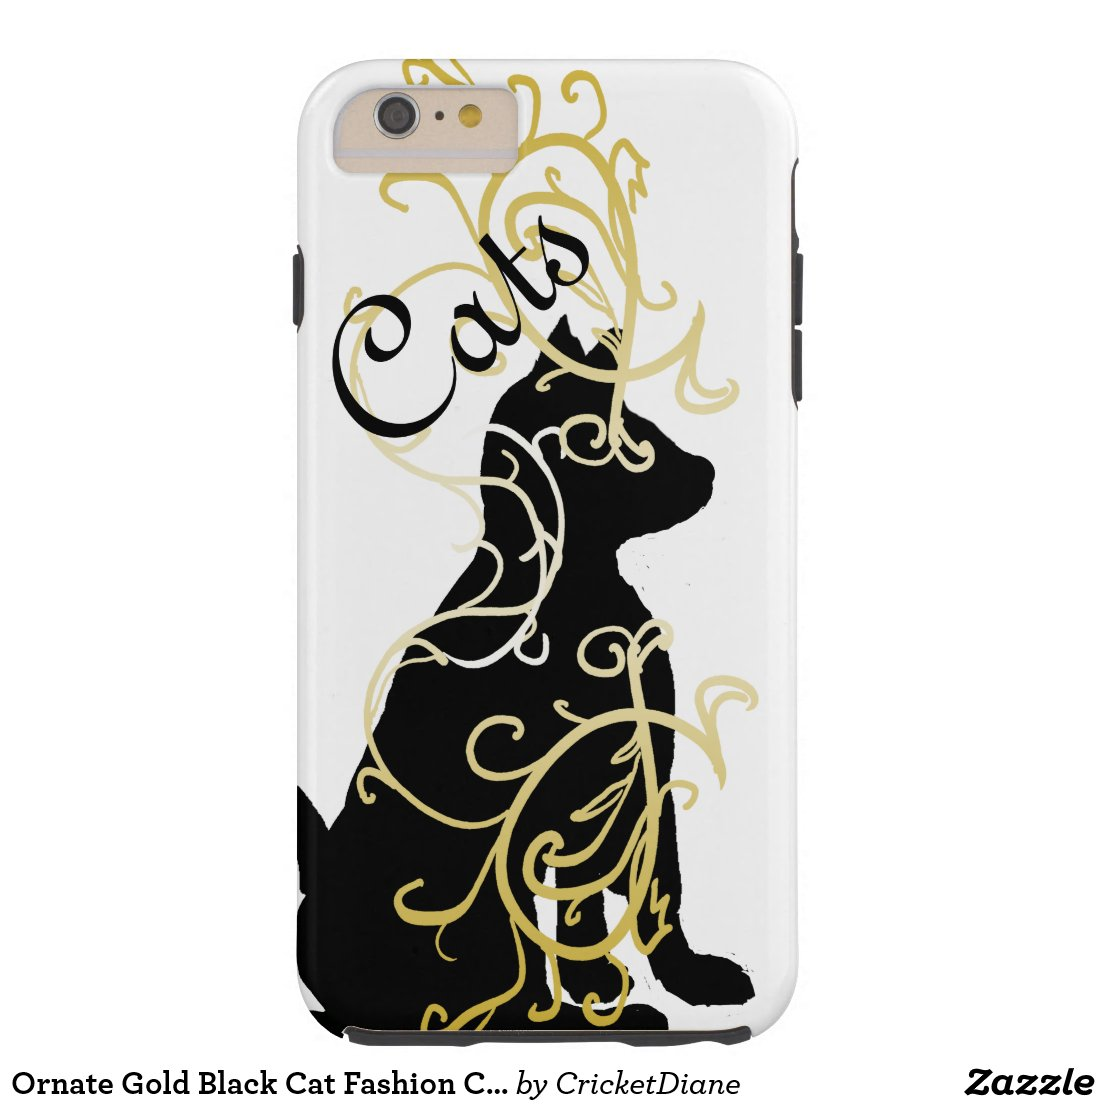 Ornate Gold Black Cat Fashion CricketDiane Tough iPhone 6 Plus Case